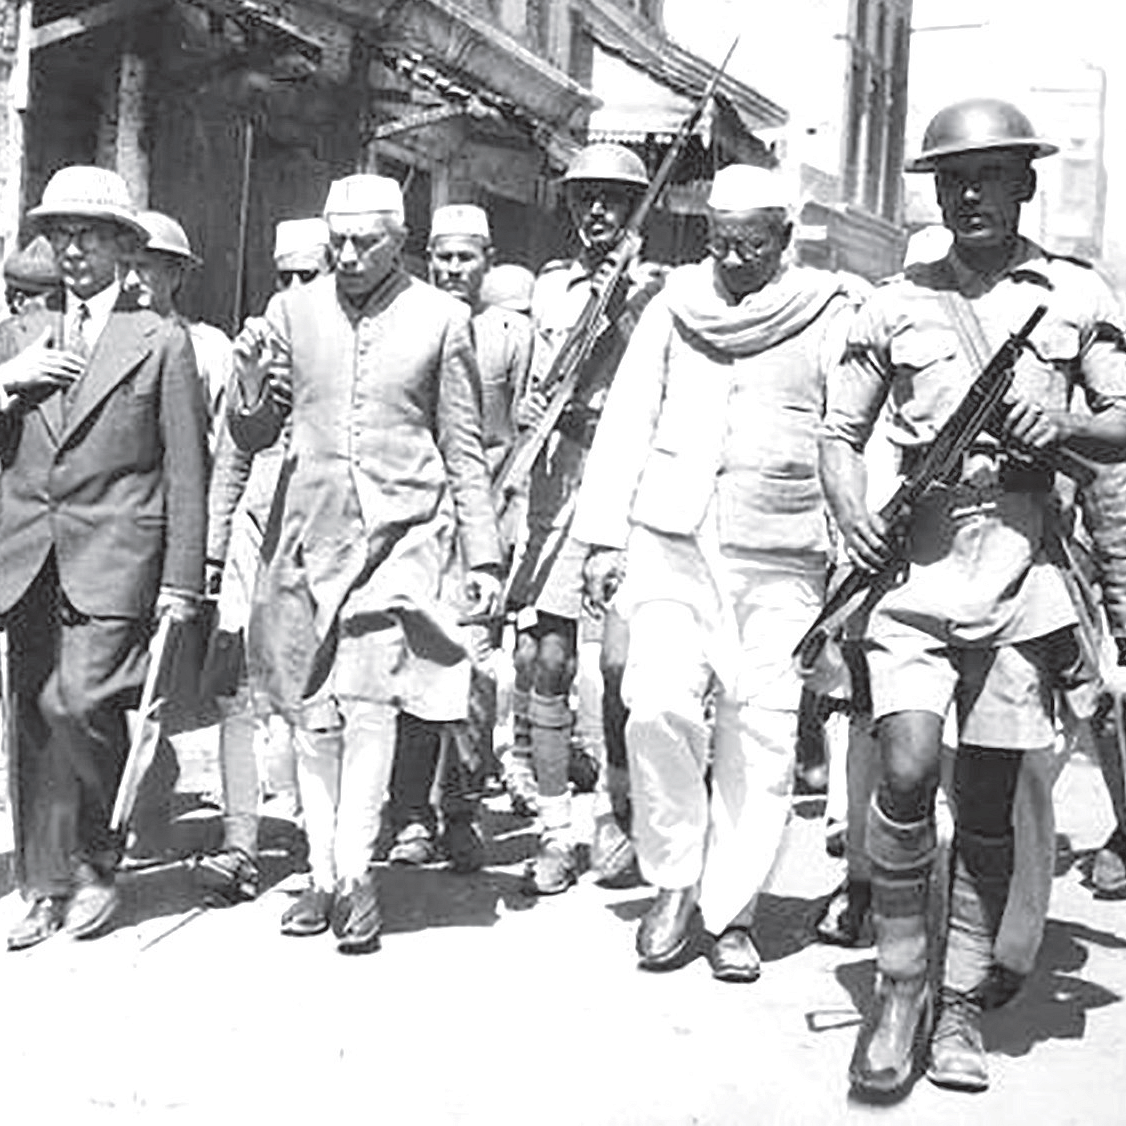 RSS has good reasons to hate Nehru: he opposed its communal politics